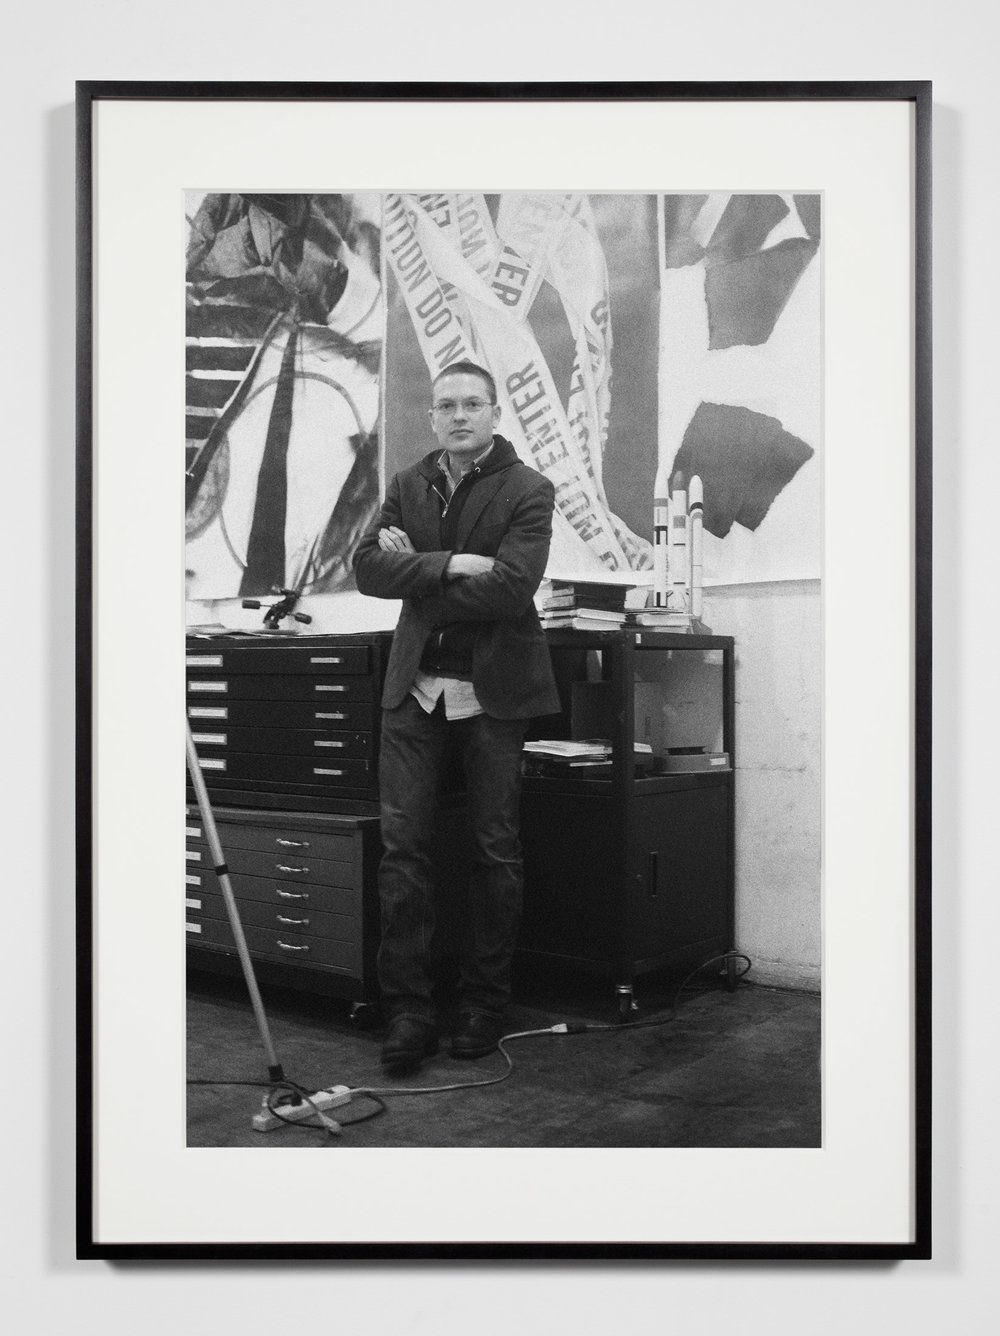 Artist, Los Angeles, California, February 8, 2009   2011  Epson Ultrachrome K3 archival ink jet print on Hahnemühle Photo Rag paper  36 3/8 x 26 3/8 inches   Industrial Portraits, 2008–    A Diagram of Forces, 2011